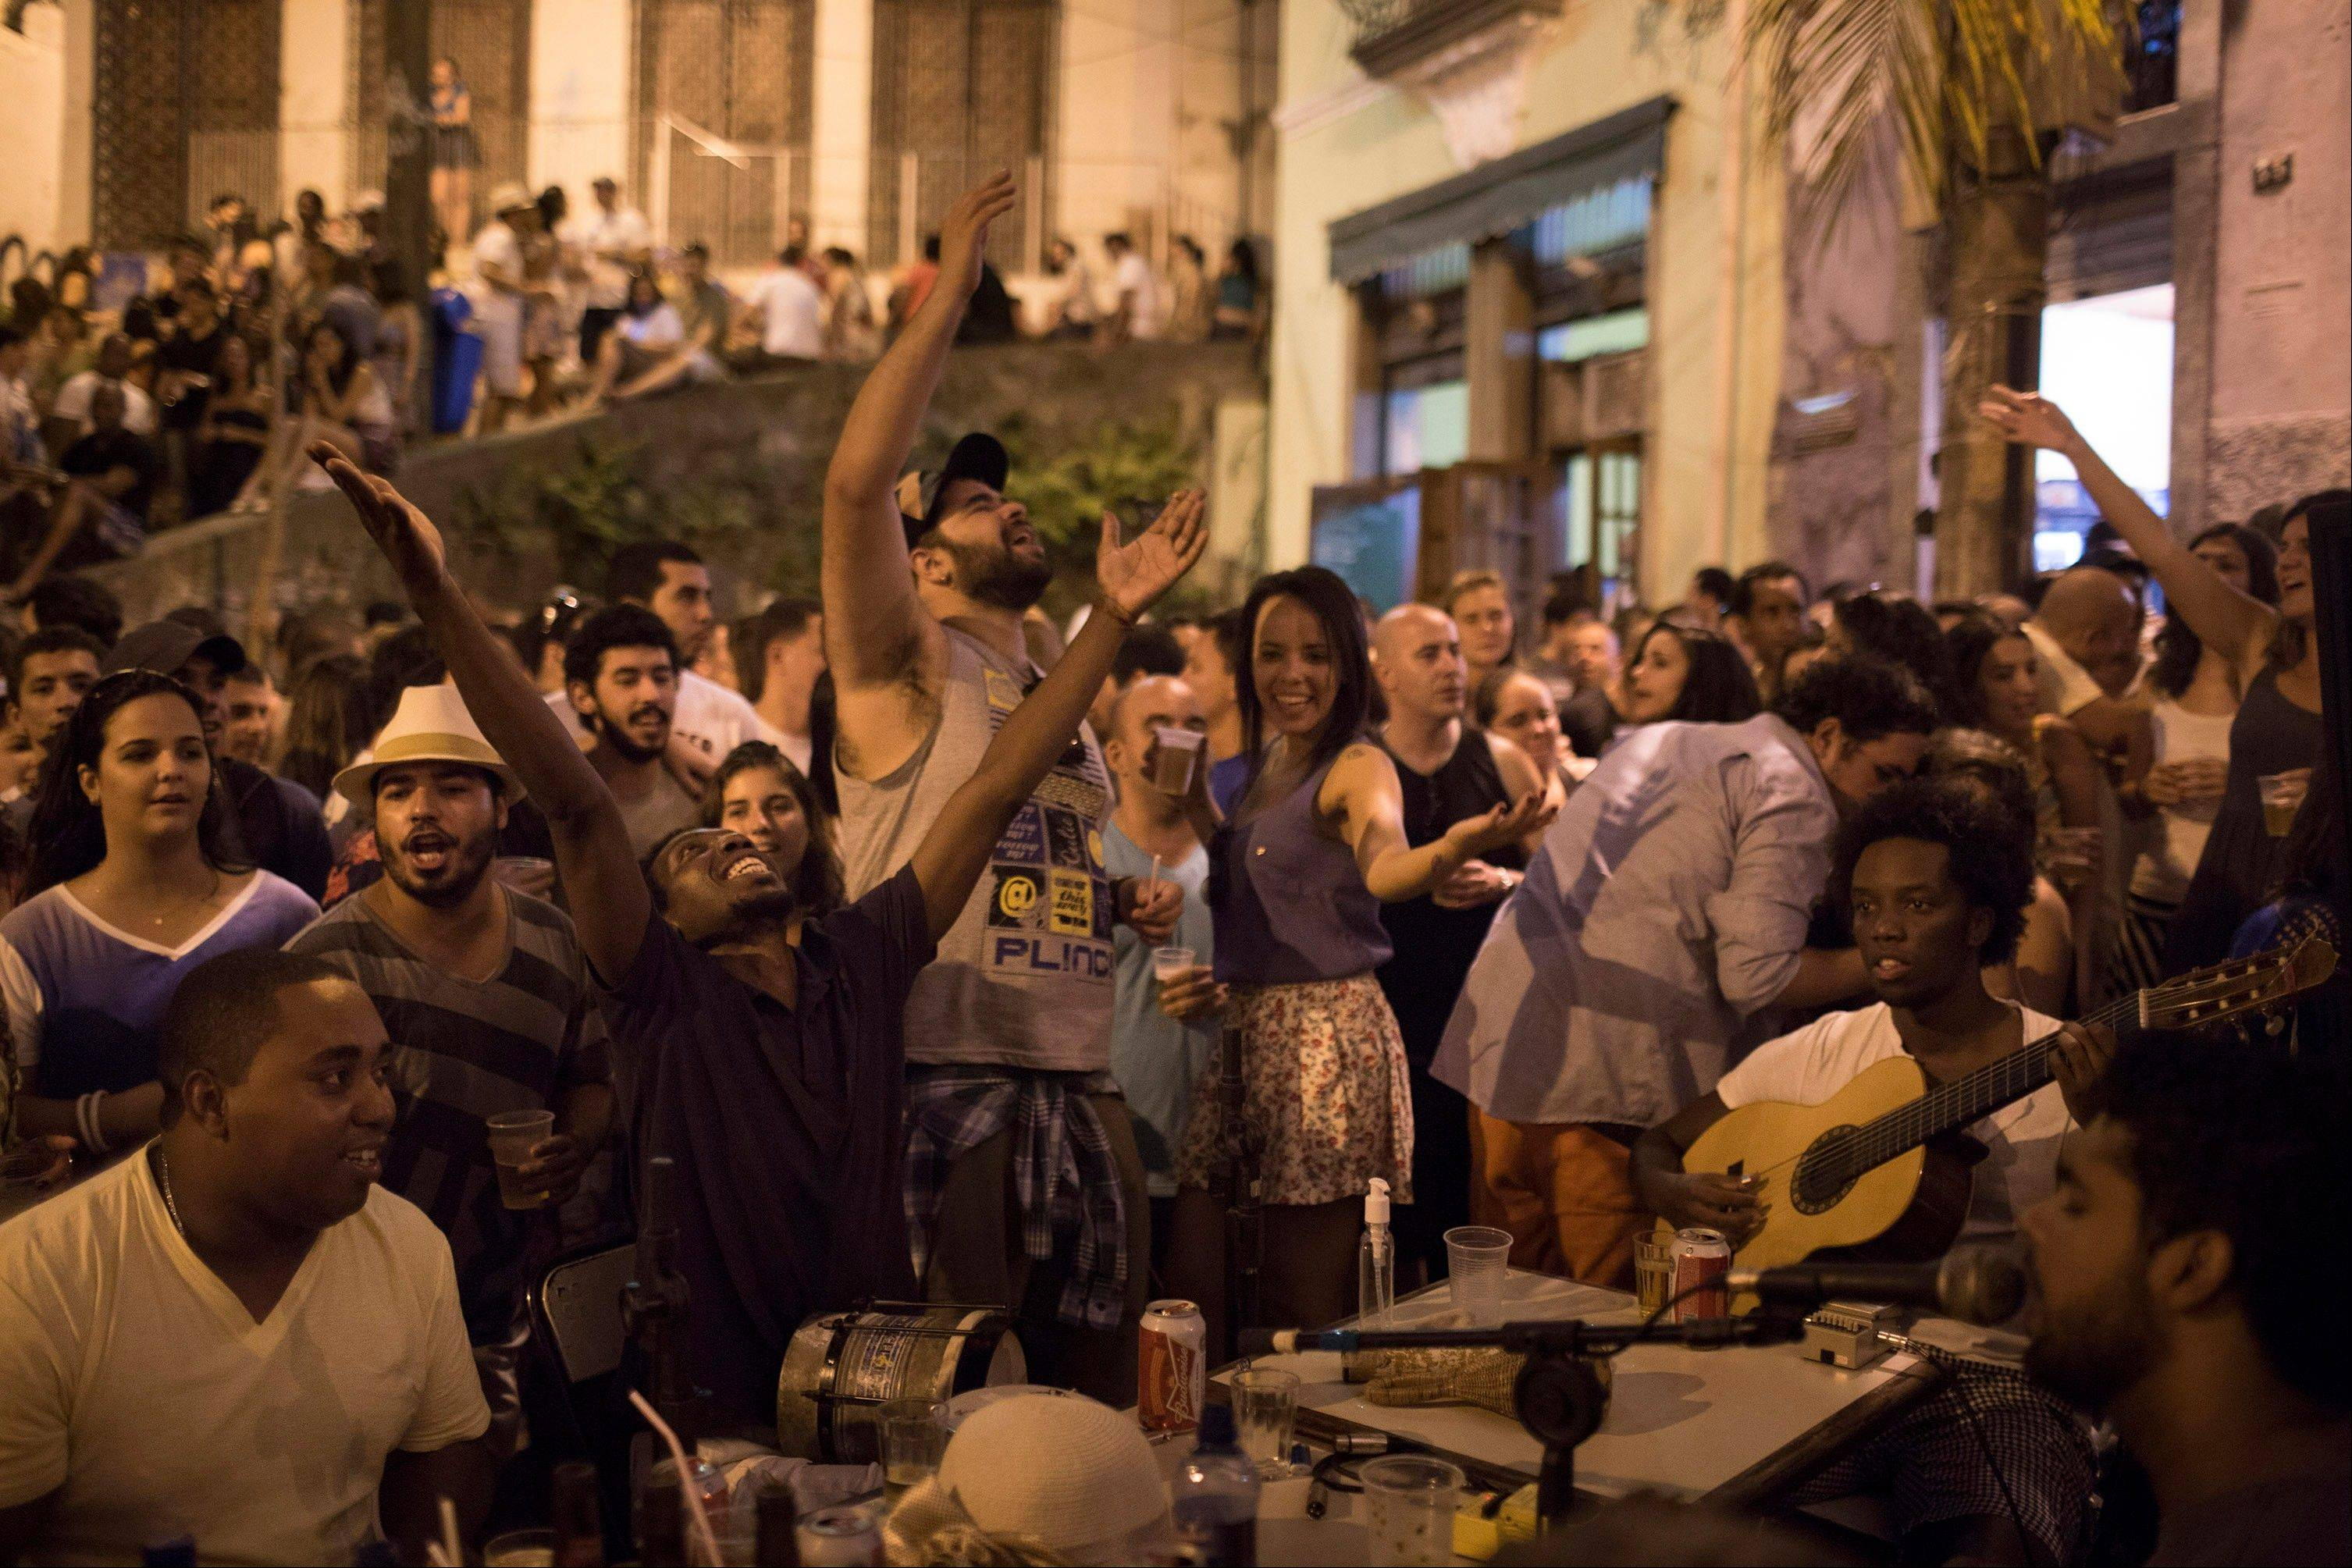 People gather to listen to live Samba music in a plaza called Pedra do Sal. Rio's signature percussion-driven rhythm can be heard in classy indoor music venues, sure, but old-school samba circles can pop up without notice.